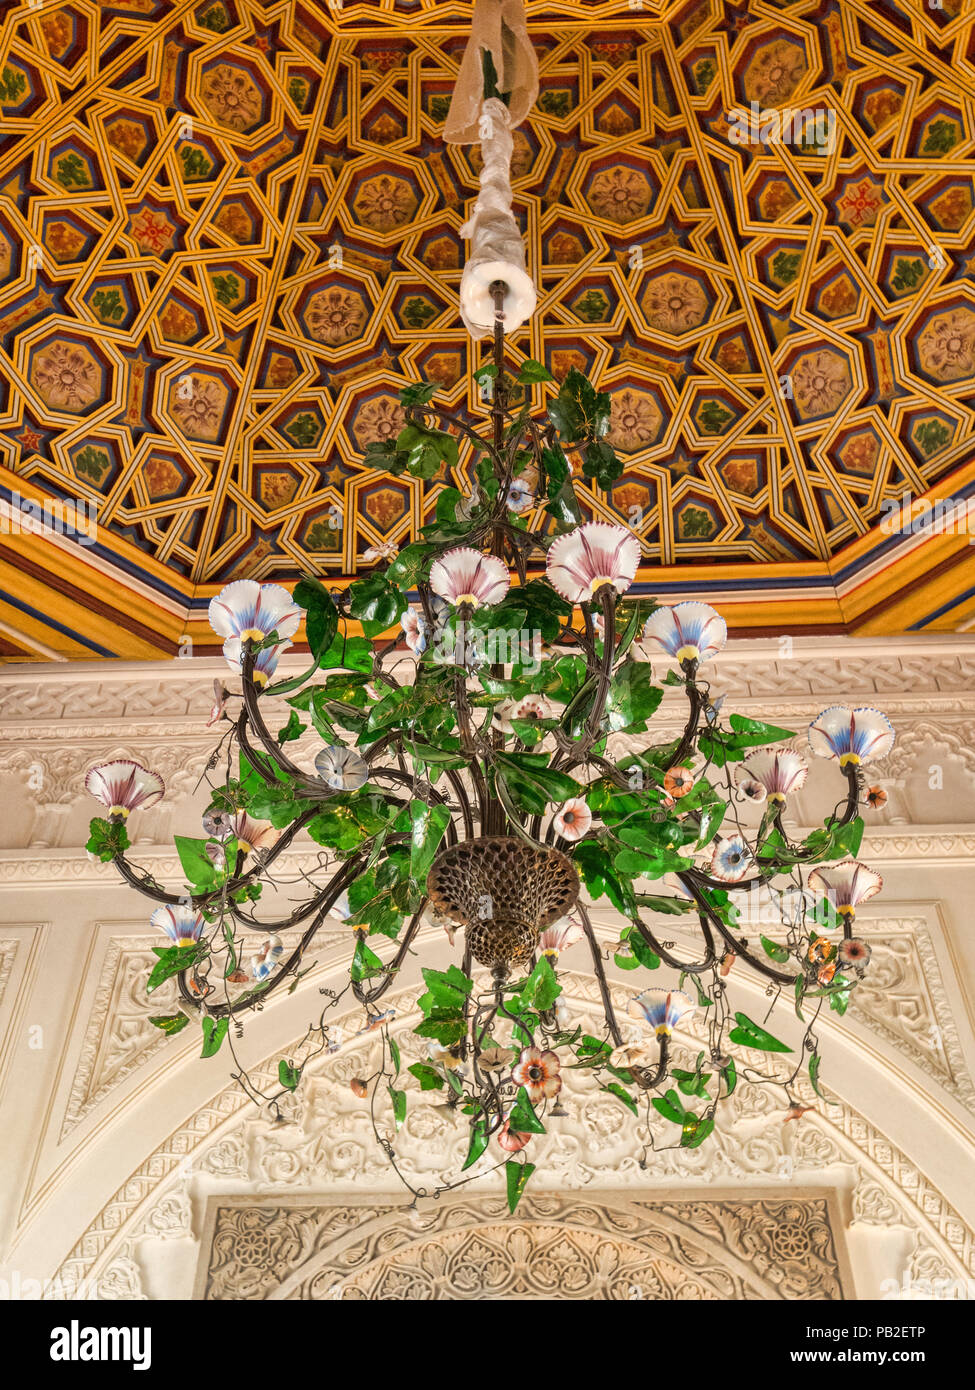 4 March 2018: Sintra, Portugal - A beautufl chandelier in a Morning Glory design in the Pena Palace. - Stock Image